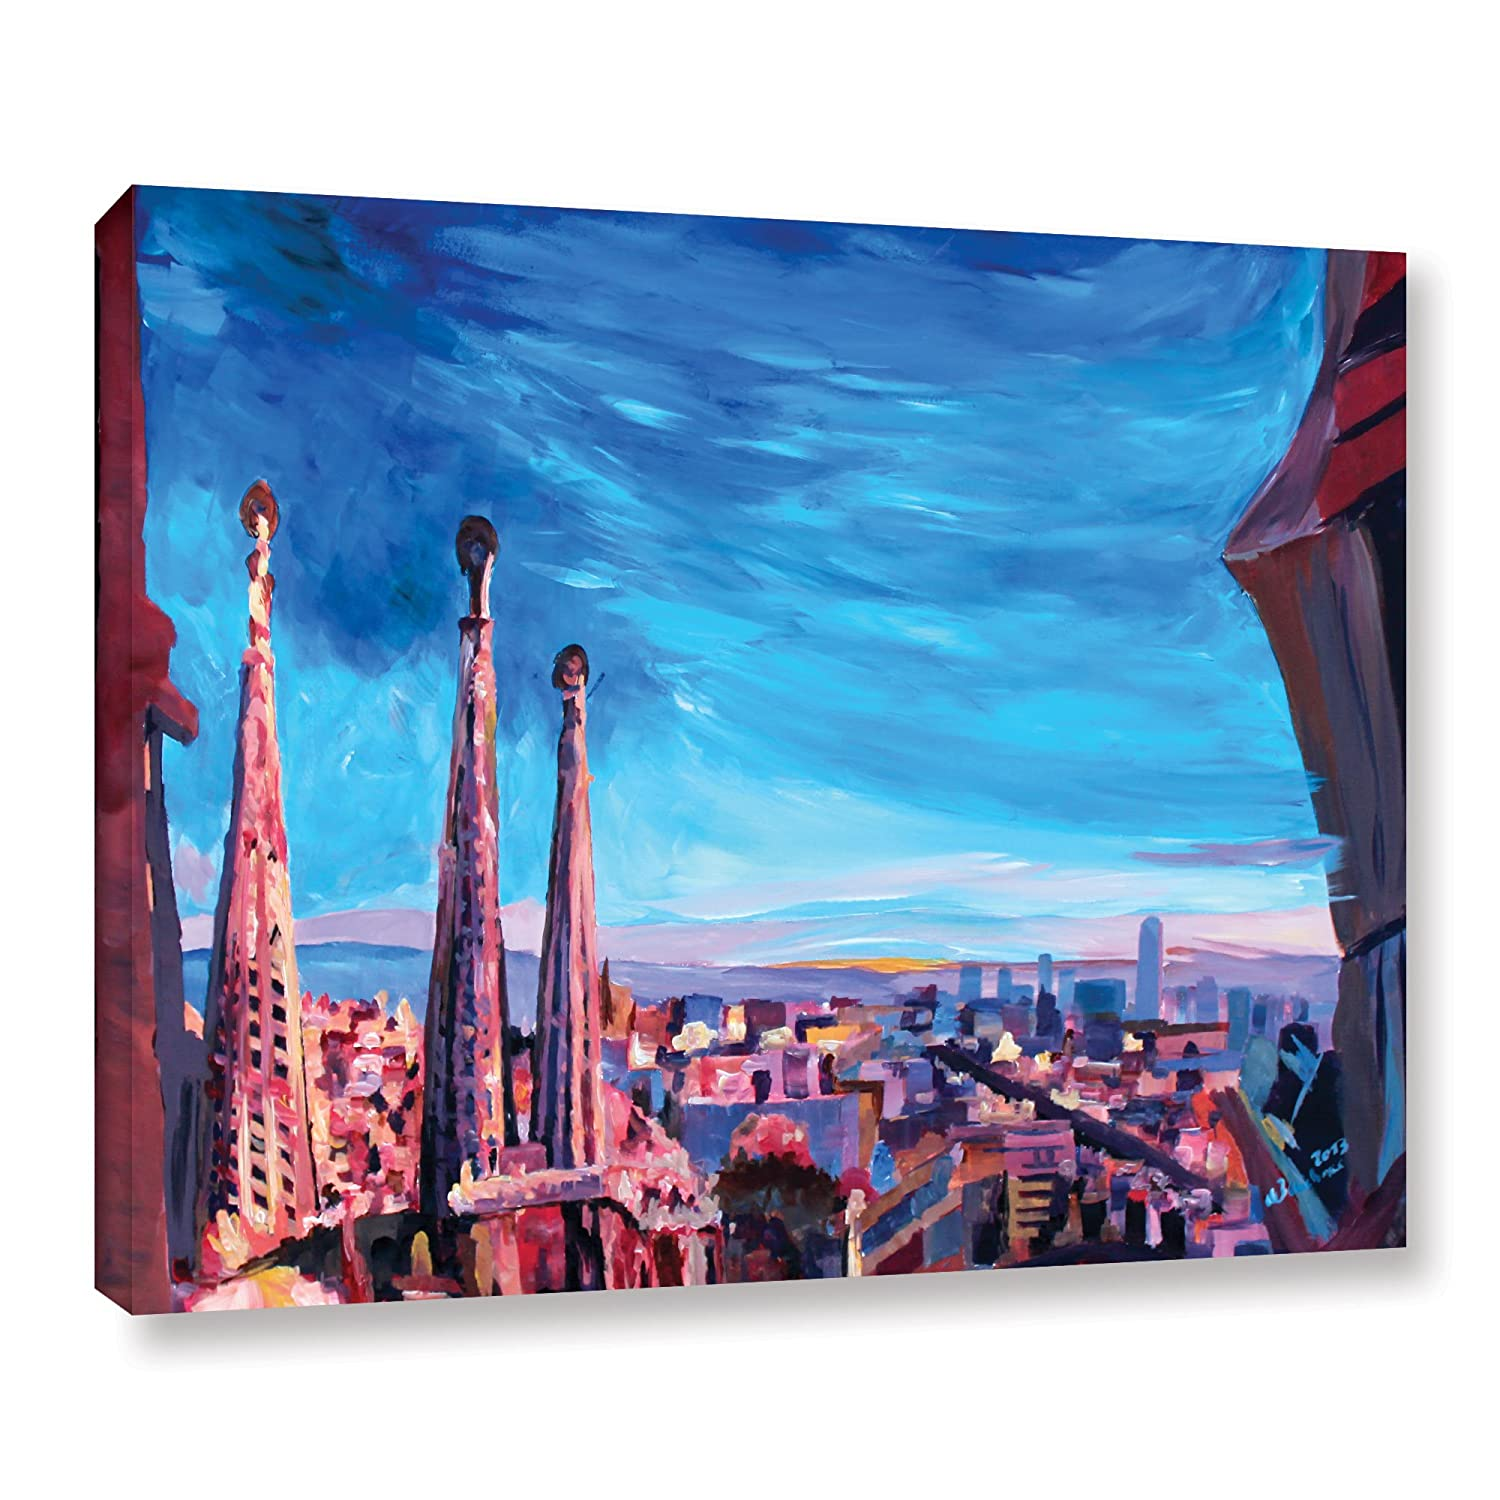 18 by 24-Inch The Art Wall 0ble001a1824w Art Wall chicago with Sagrada Familia Gallery Wrapped Canvas Artwork by Markus Bleichner